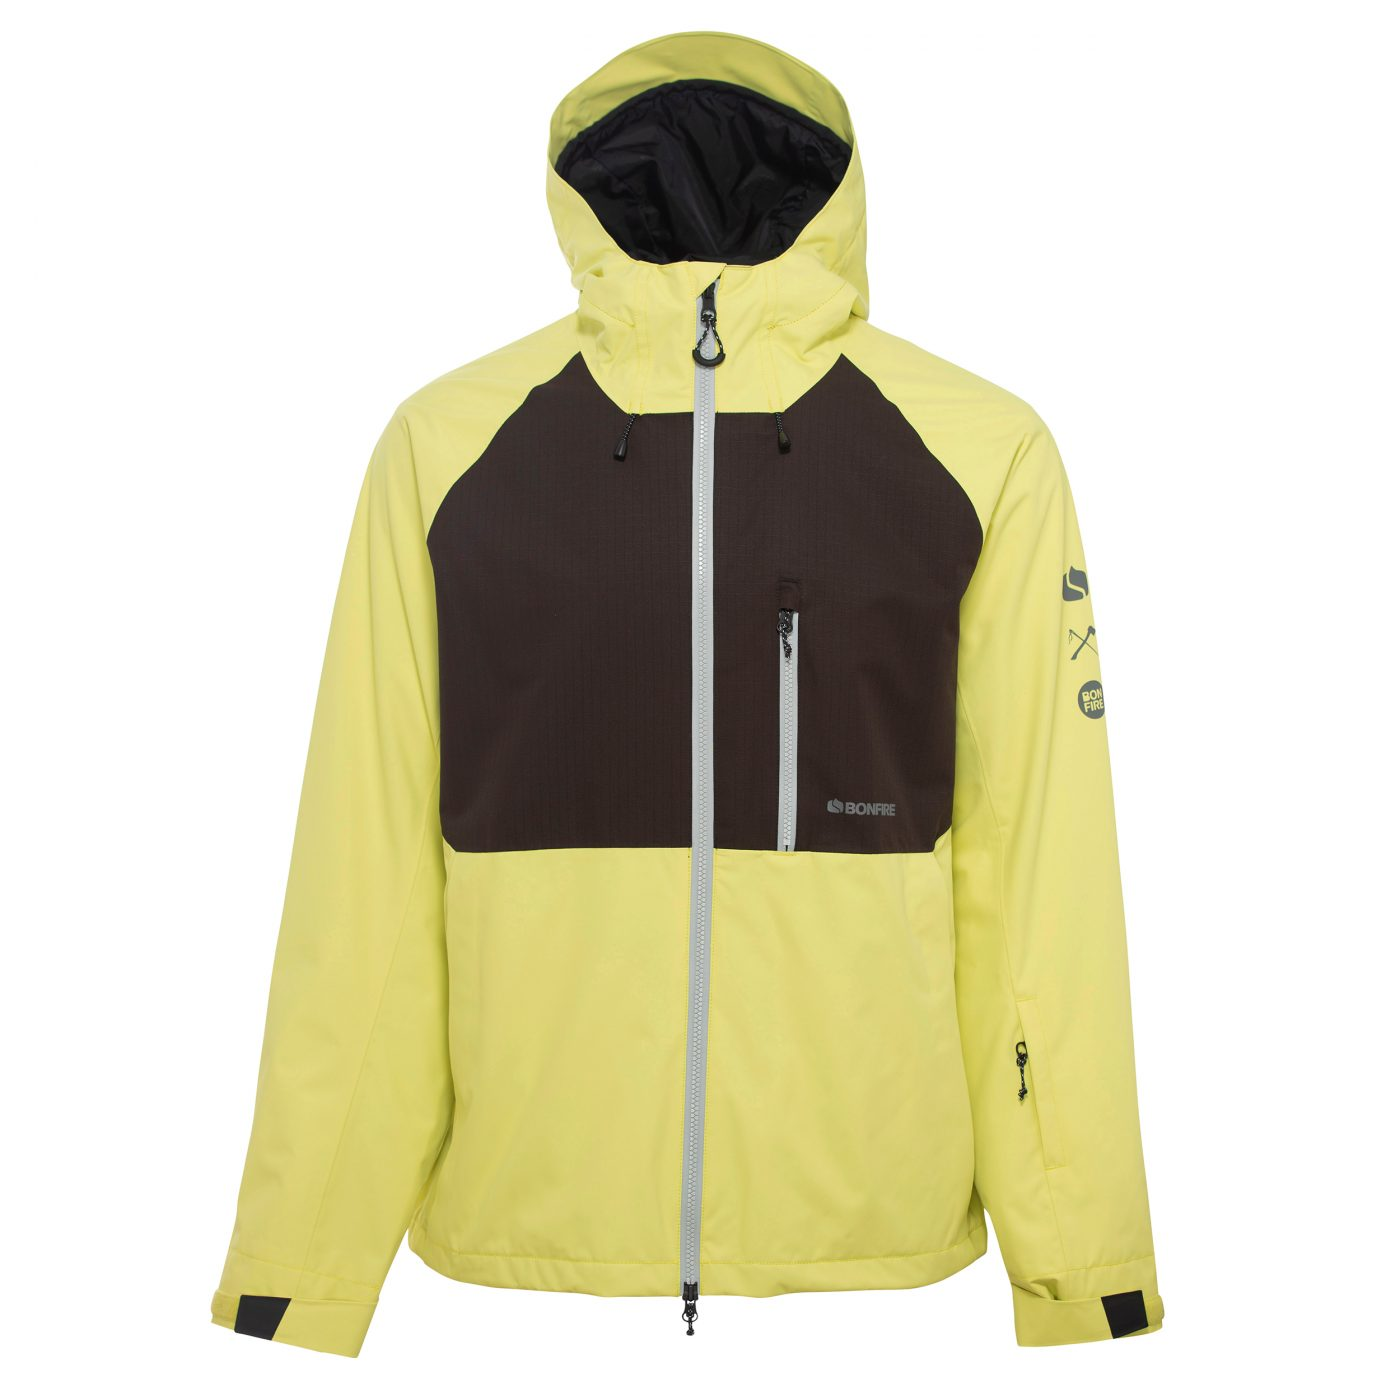 PYRE SHELL JACKET